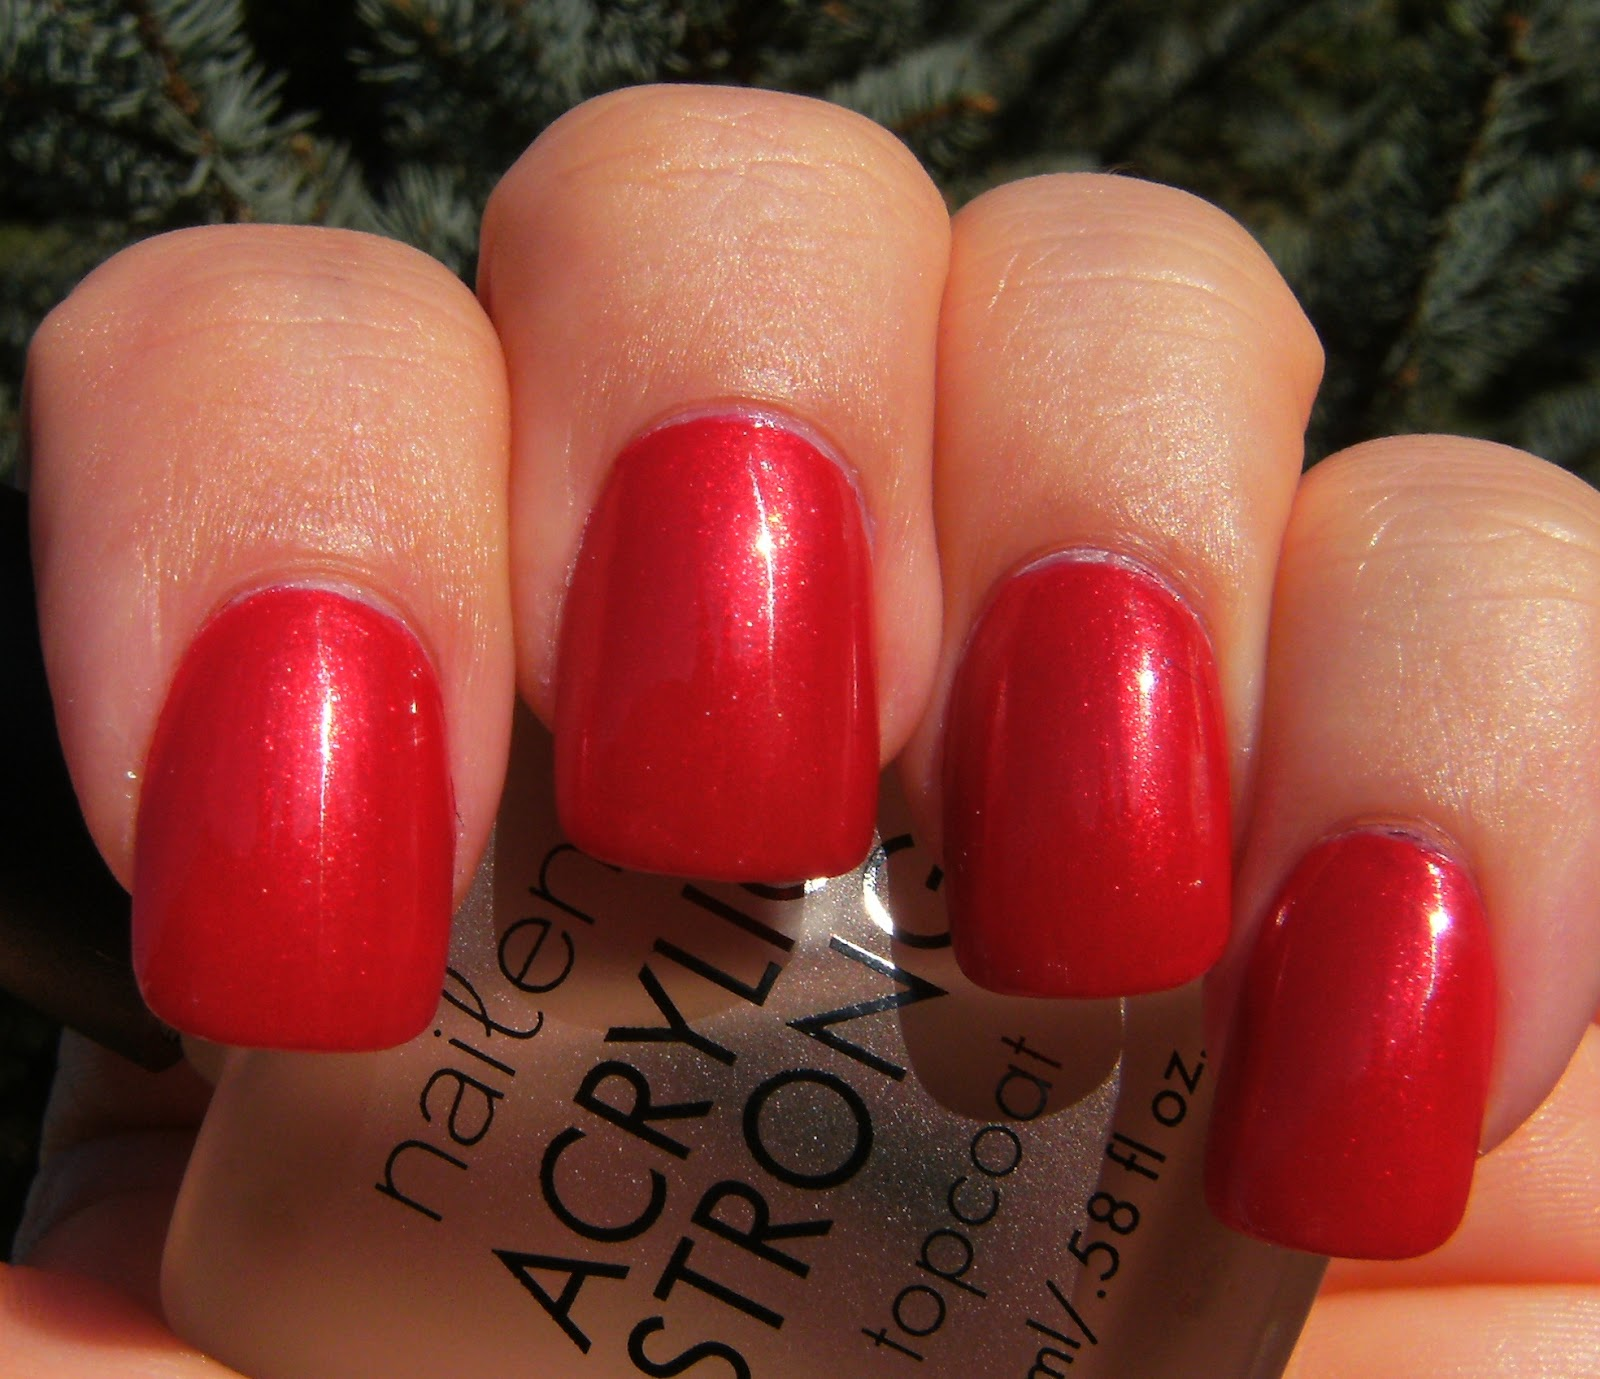 which brand of red polish comes 19 underrated nail polish brands that are actually good that flexes with your nail and comes in beautiful every brand of nail polish.